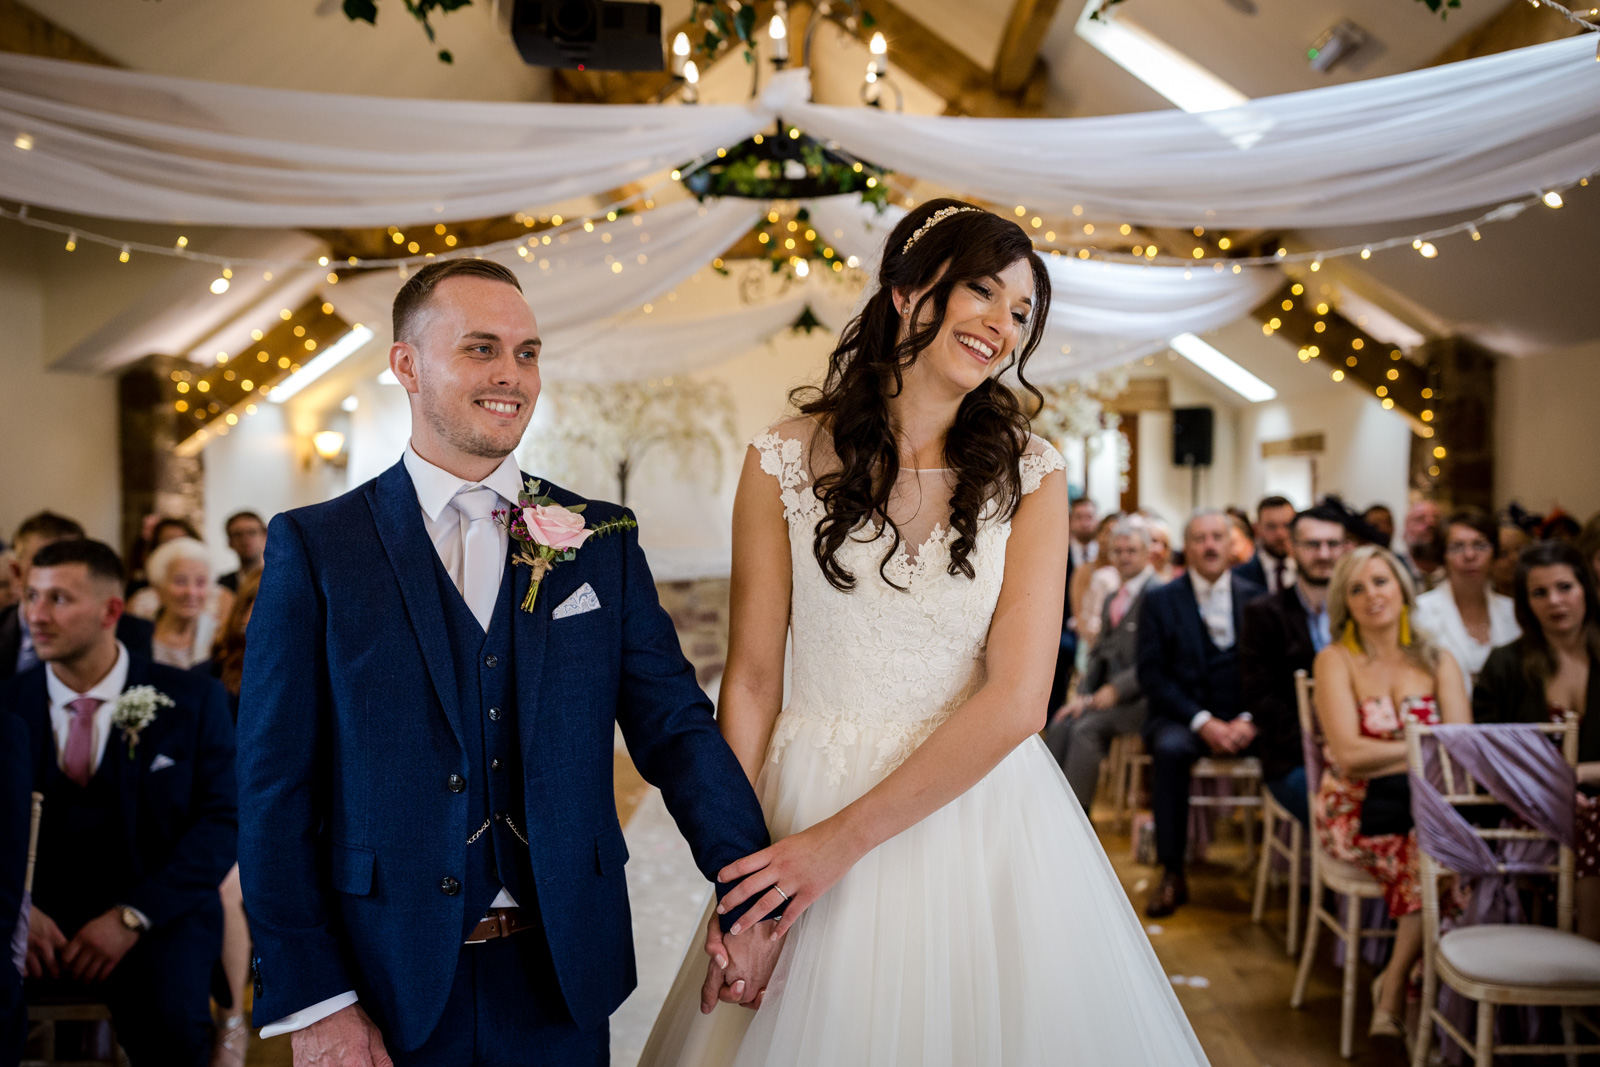 Beeston Manor Wedding in Lancashire